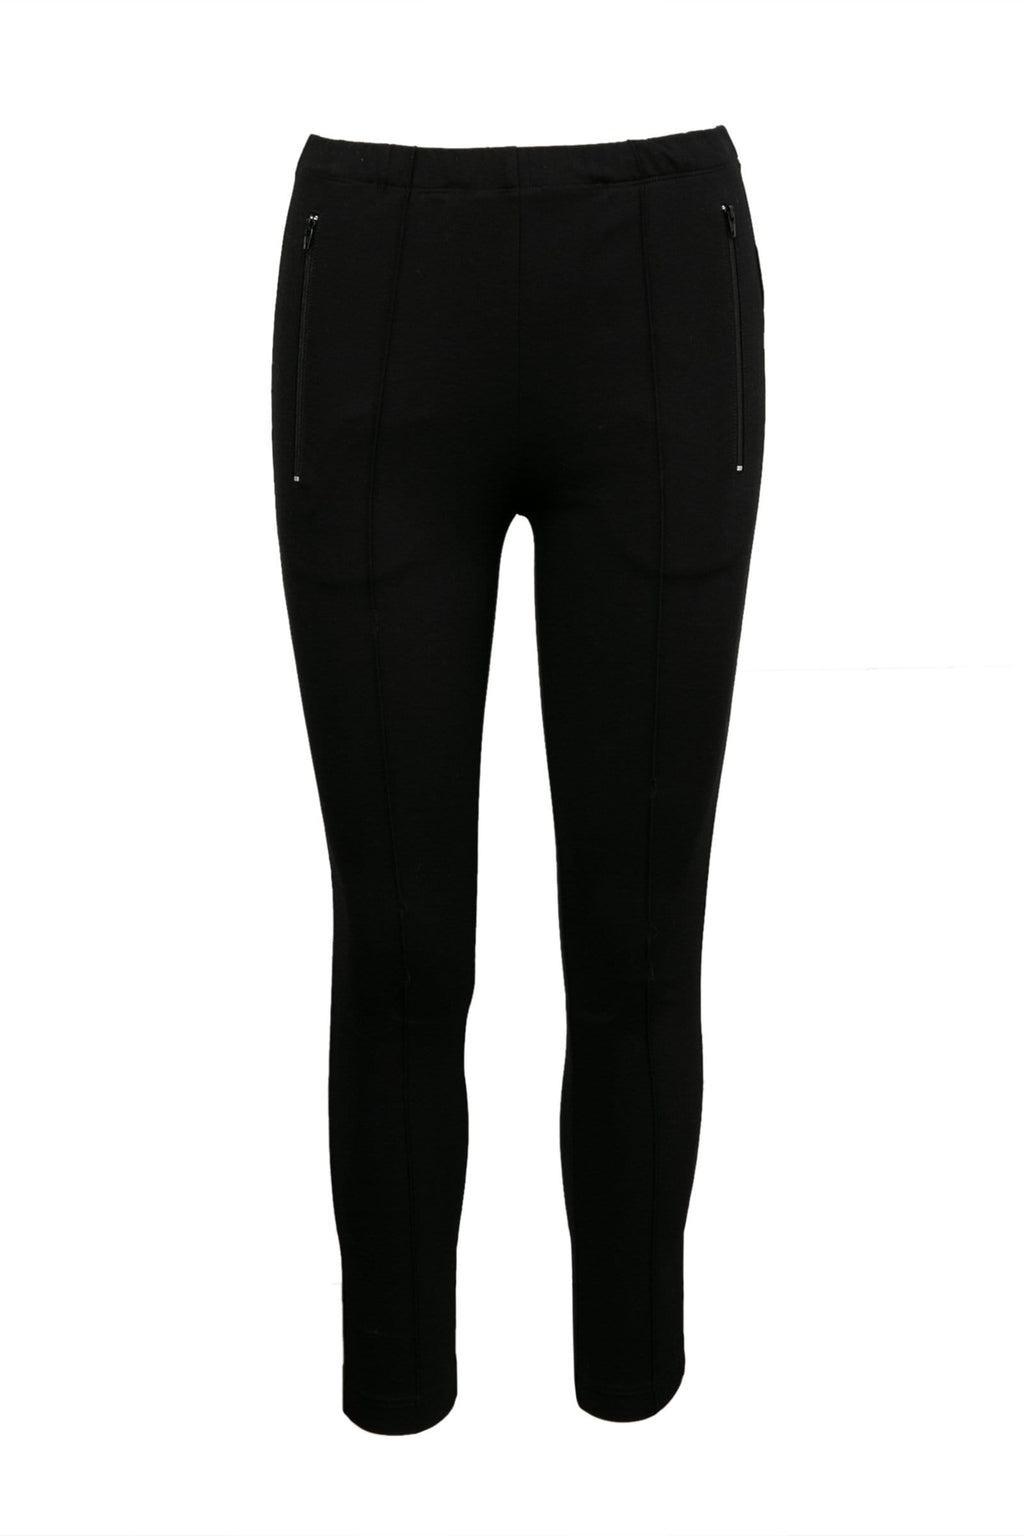 Pro Black Fitted Leggings by J.ING Women's Bottoms